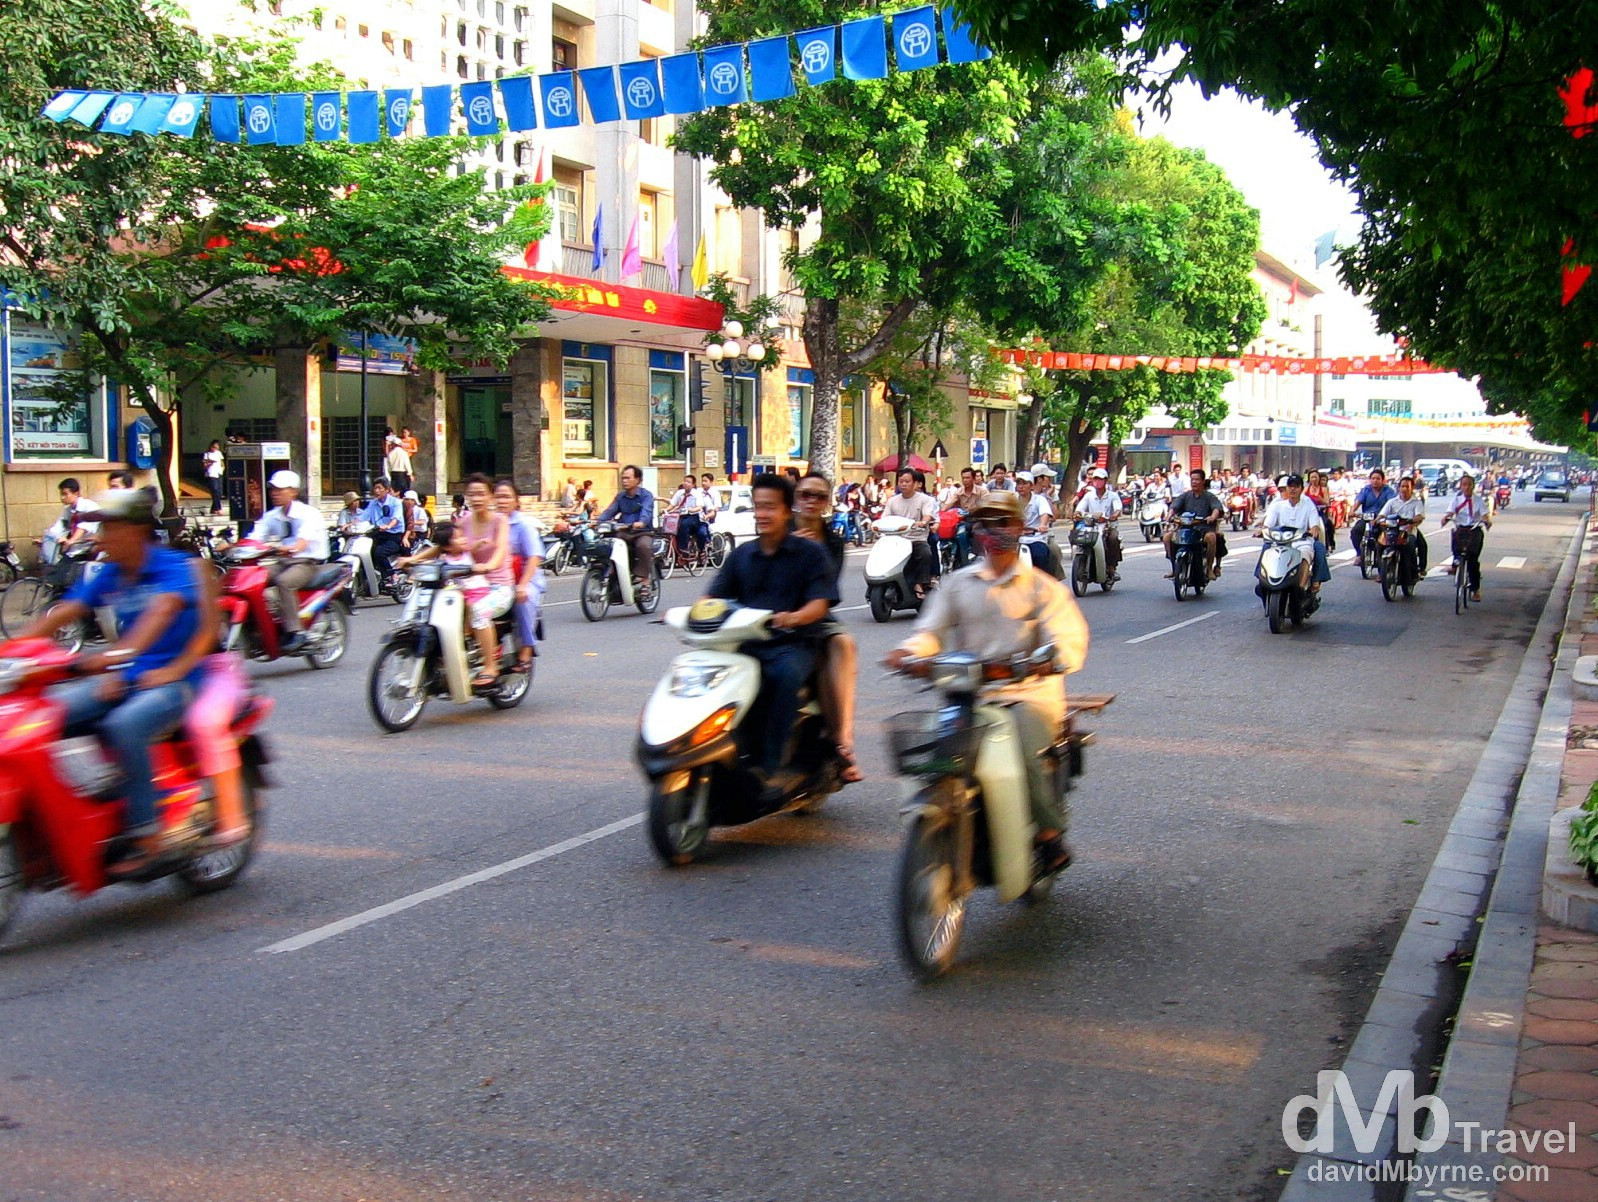 Scooters on the streets of Hanoi, Vietnam. September 5th, 2005.